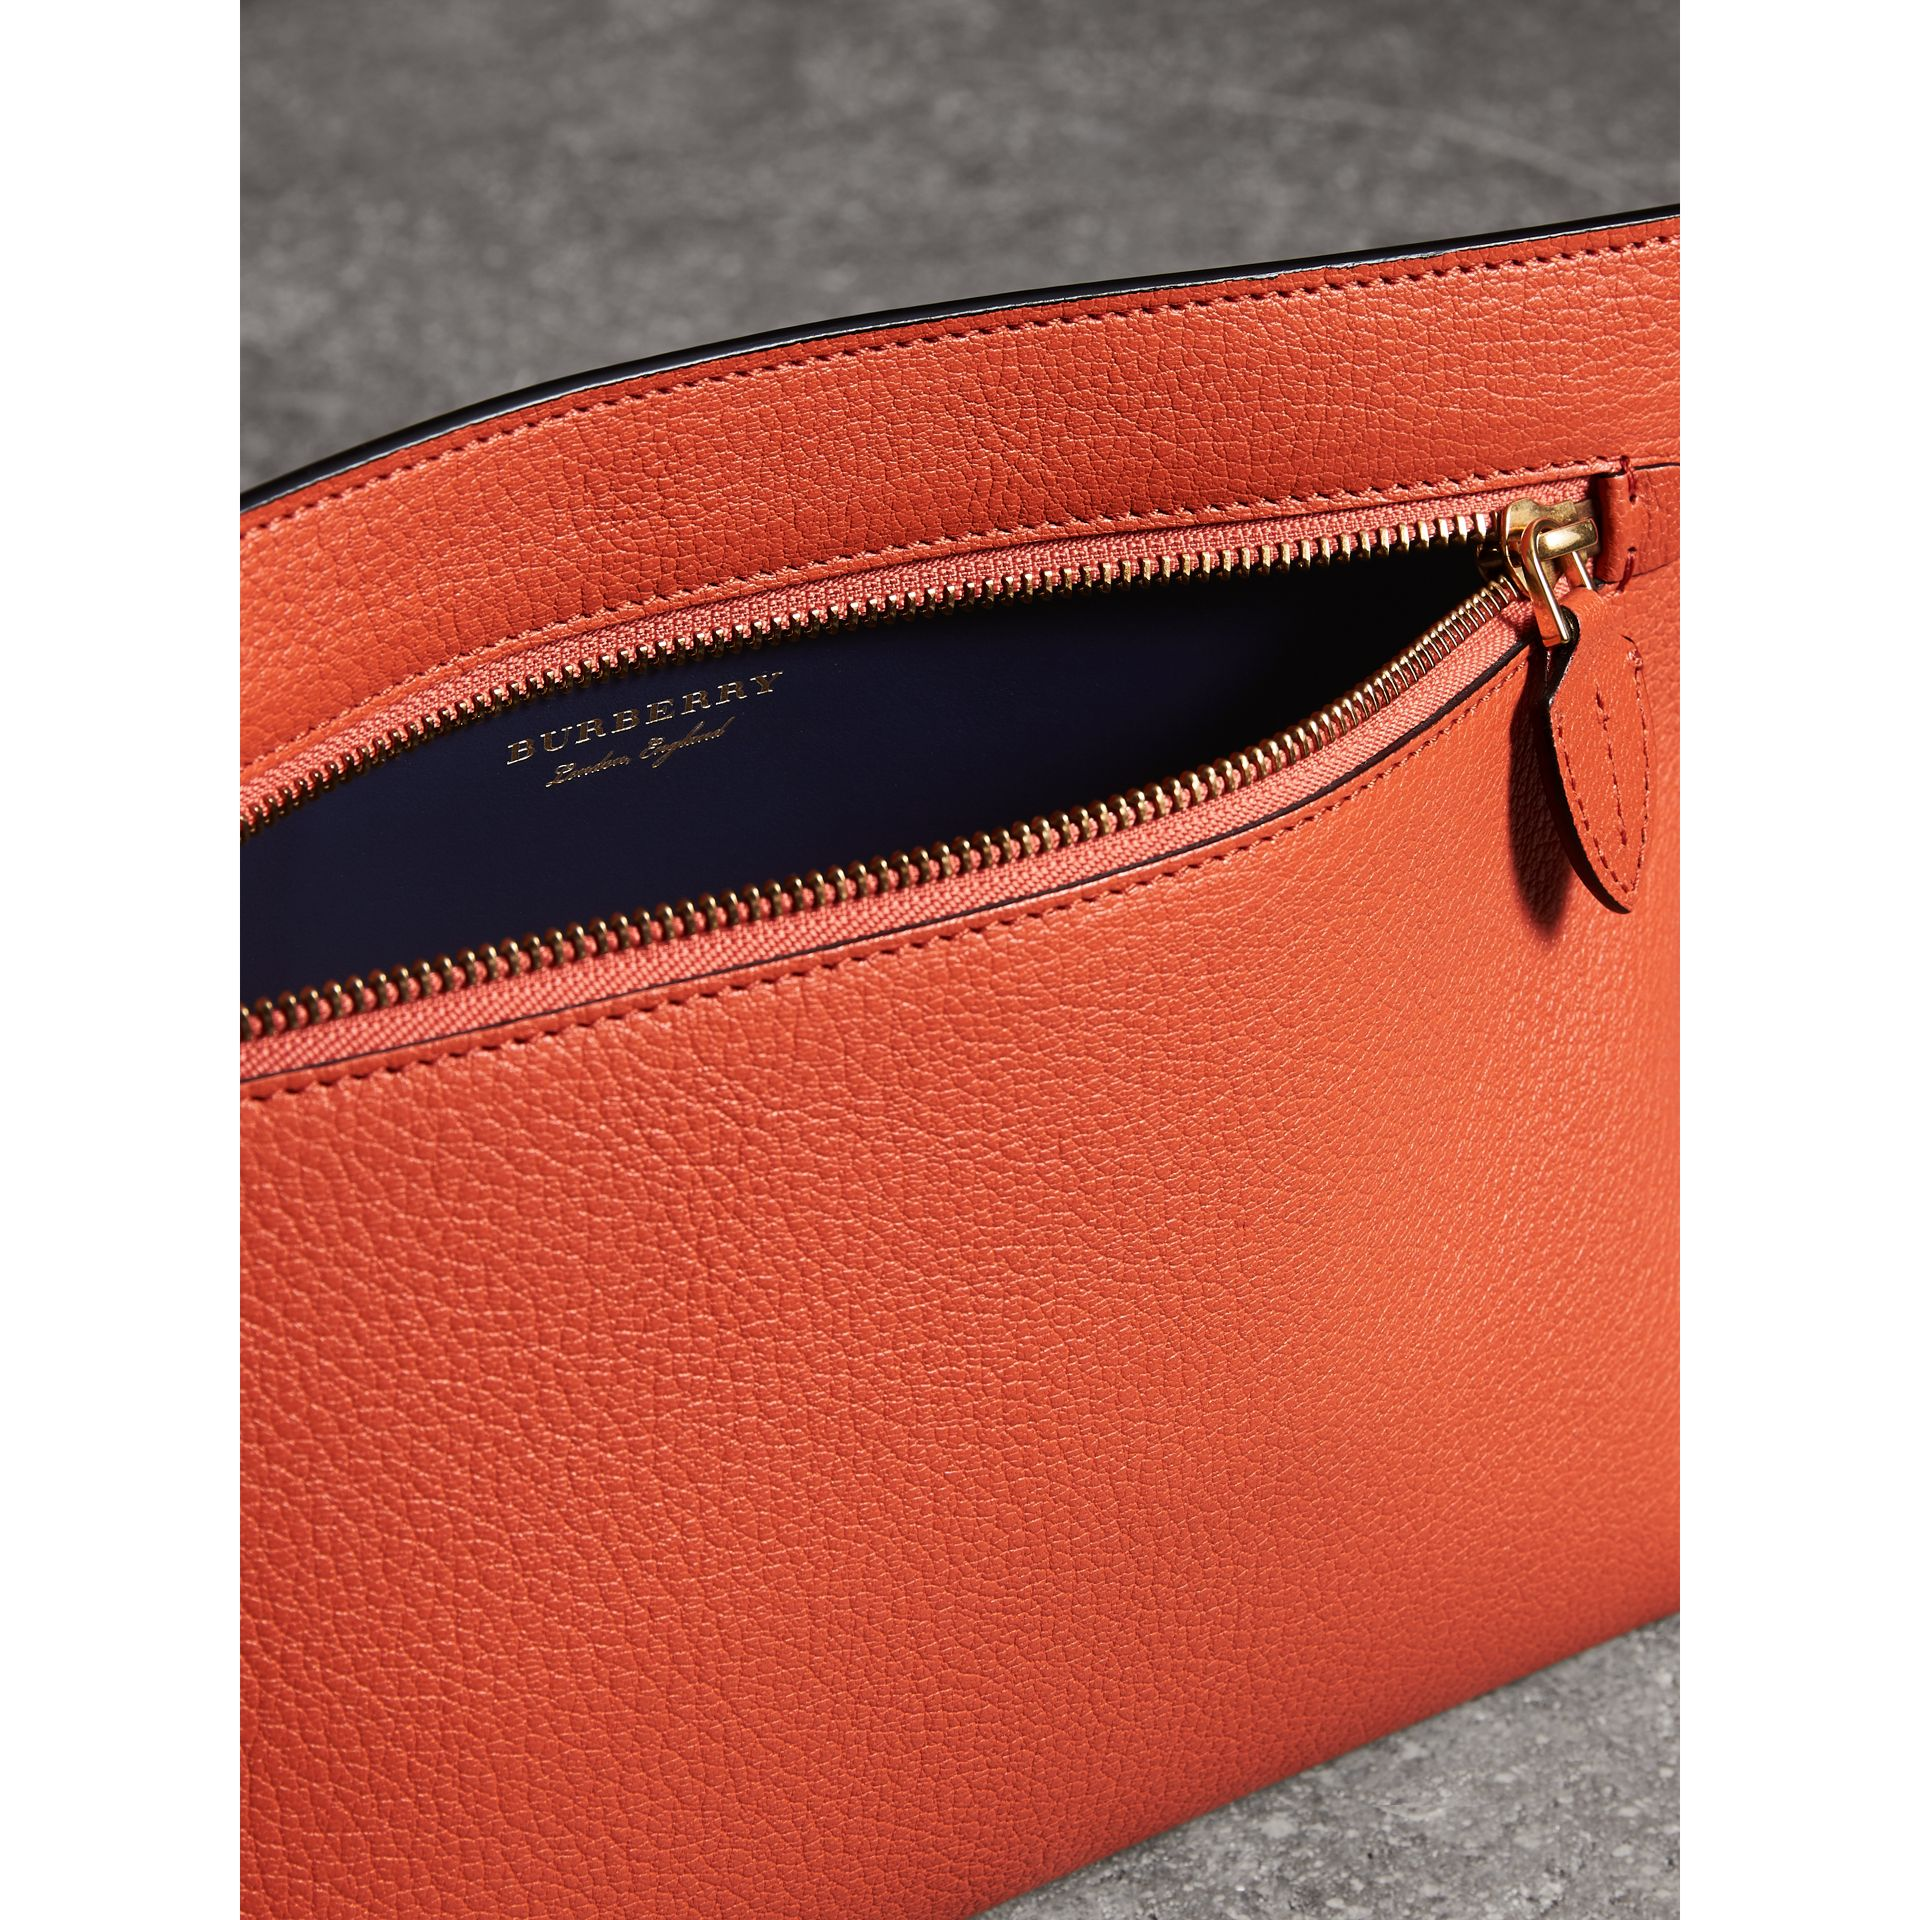 Grainy Leather Wristlet Clutch in Clementine - Women | Burberry Australia - gallery image 6